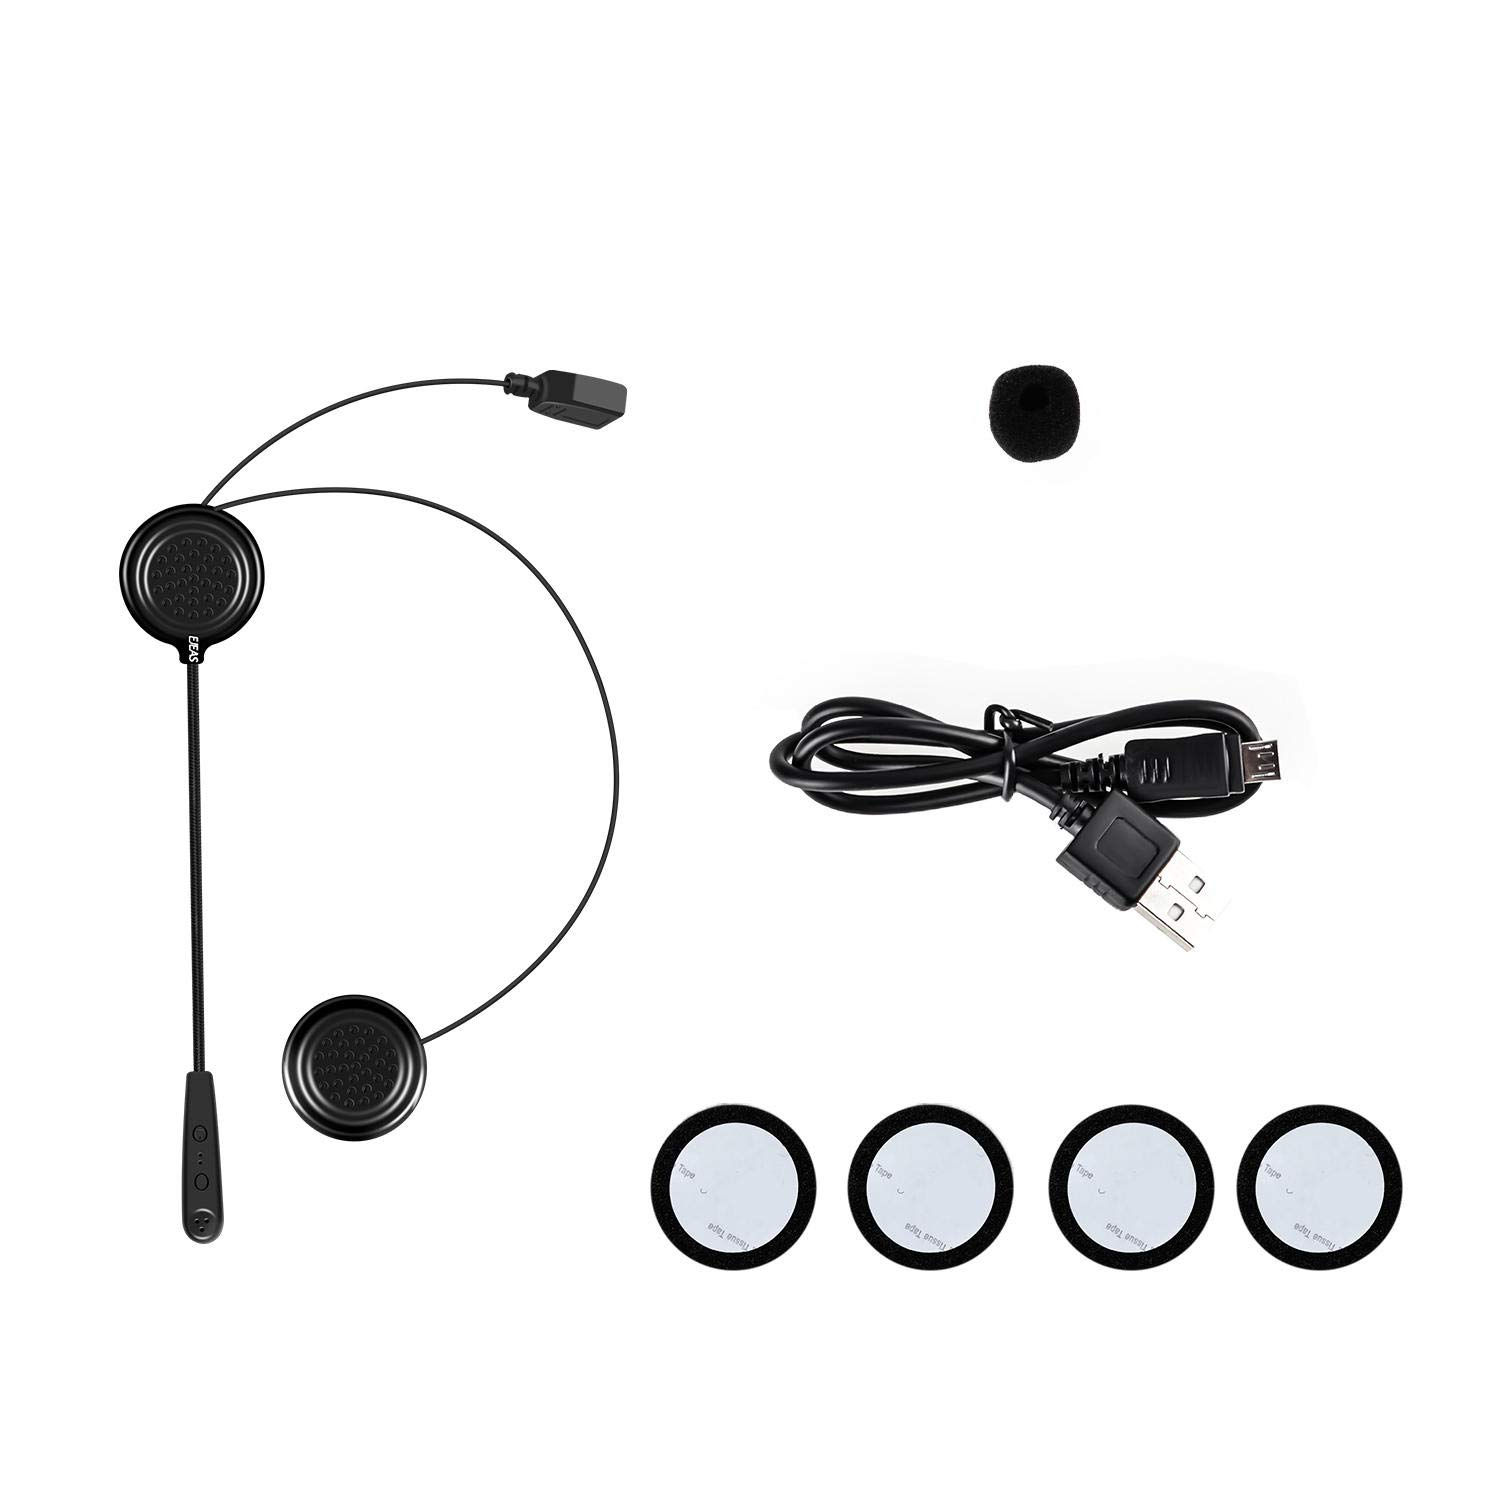 Bluetooth Intercom Motorcycle Microphone Outdoor - 1PCs